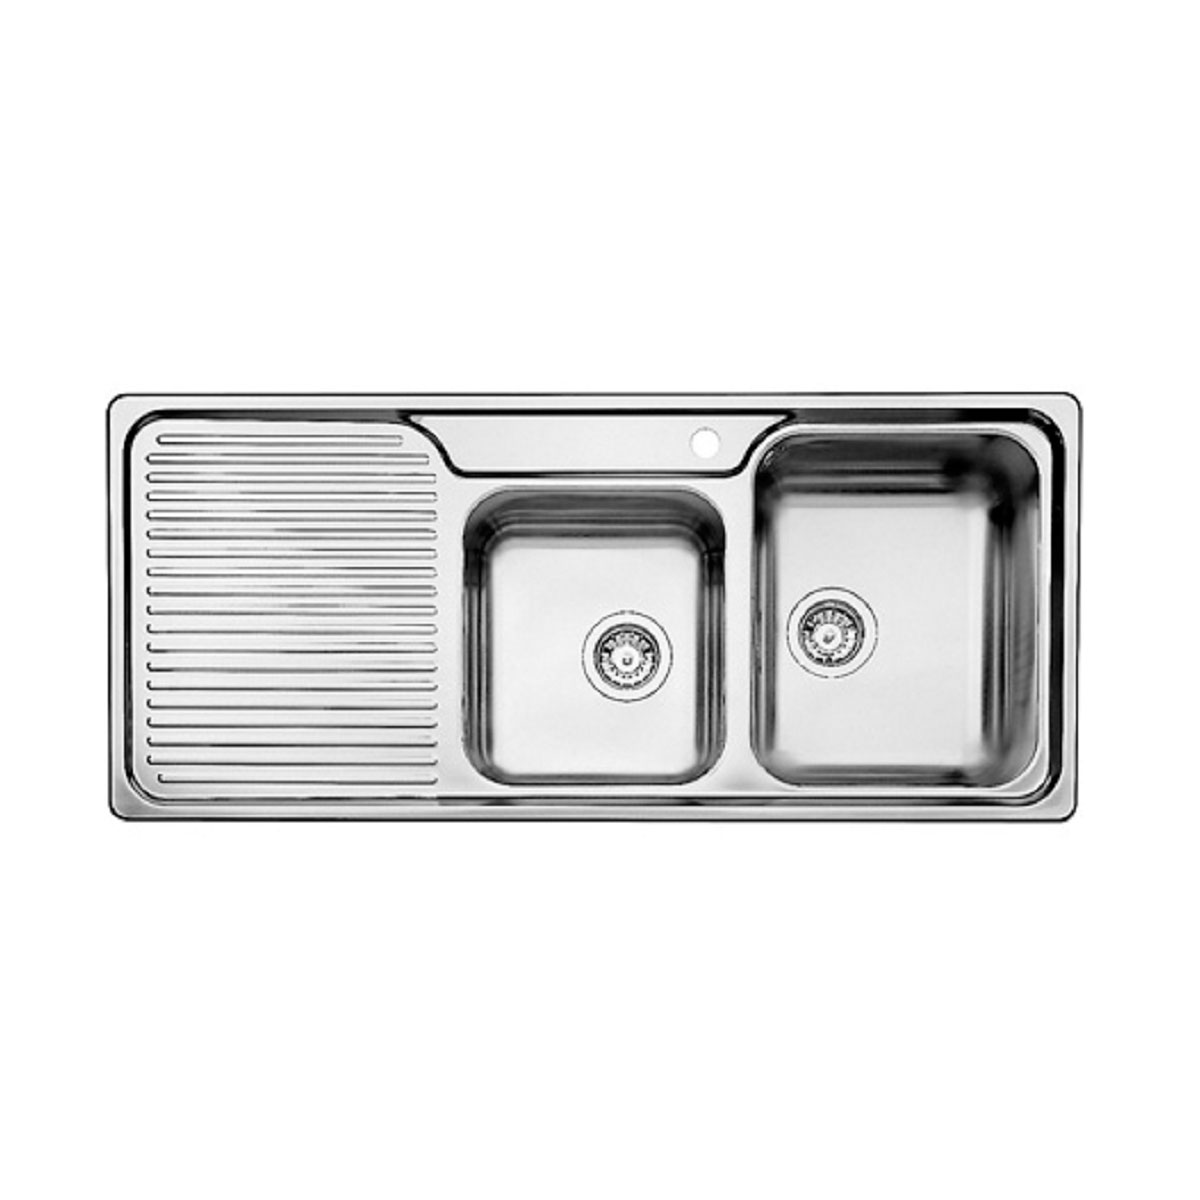 Blanco MCLZL-B5899 1 and 3/4 Bowl Right Hand Drainer Sink